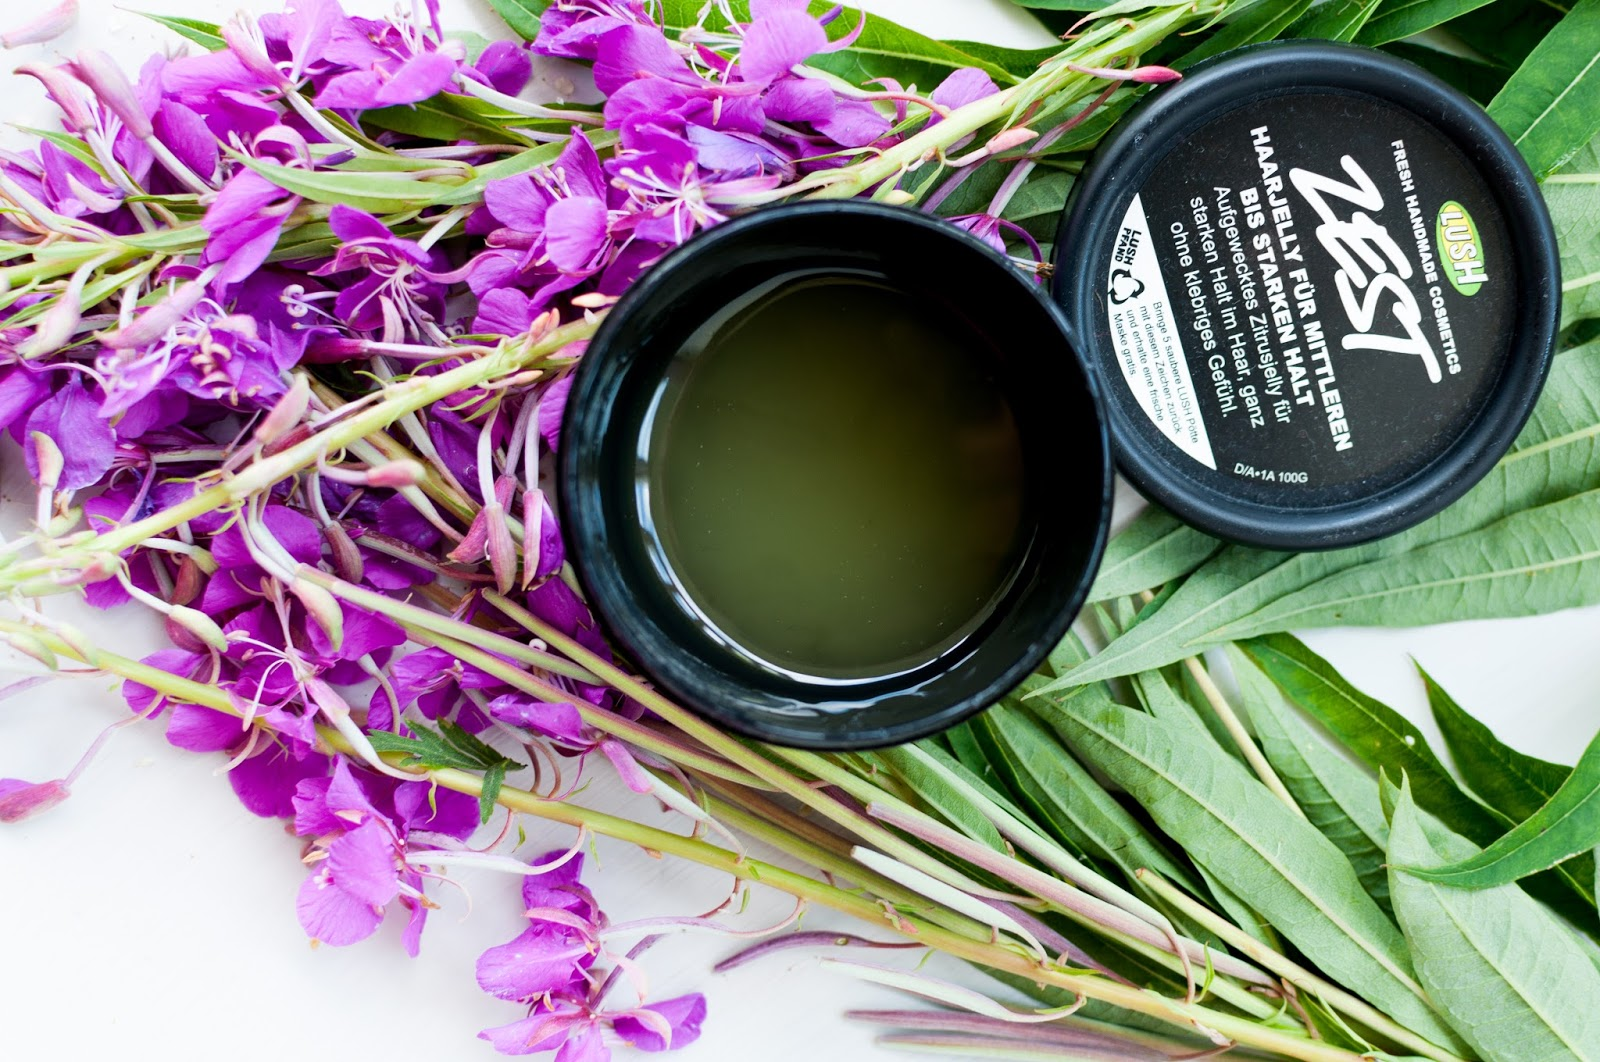 vanvivoi review Lush ZESTE hair styling gel